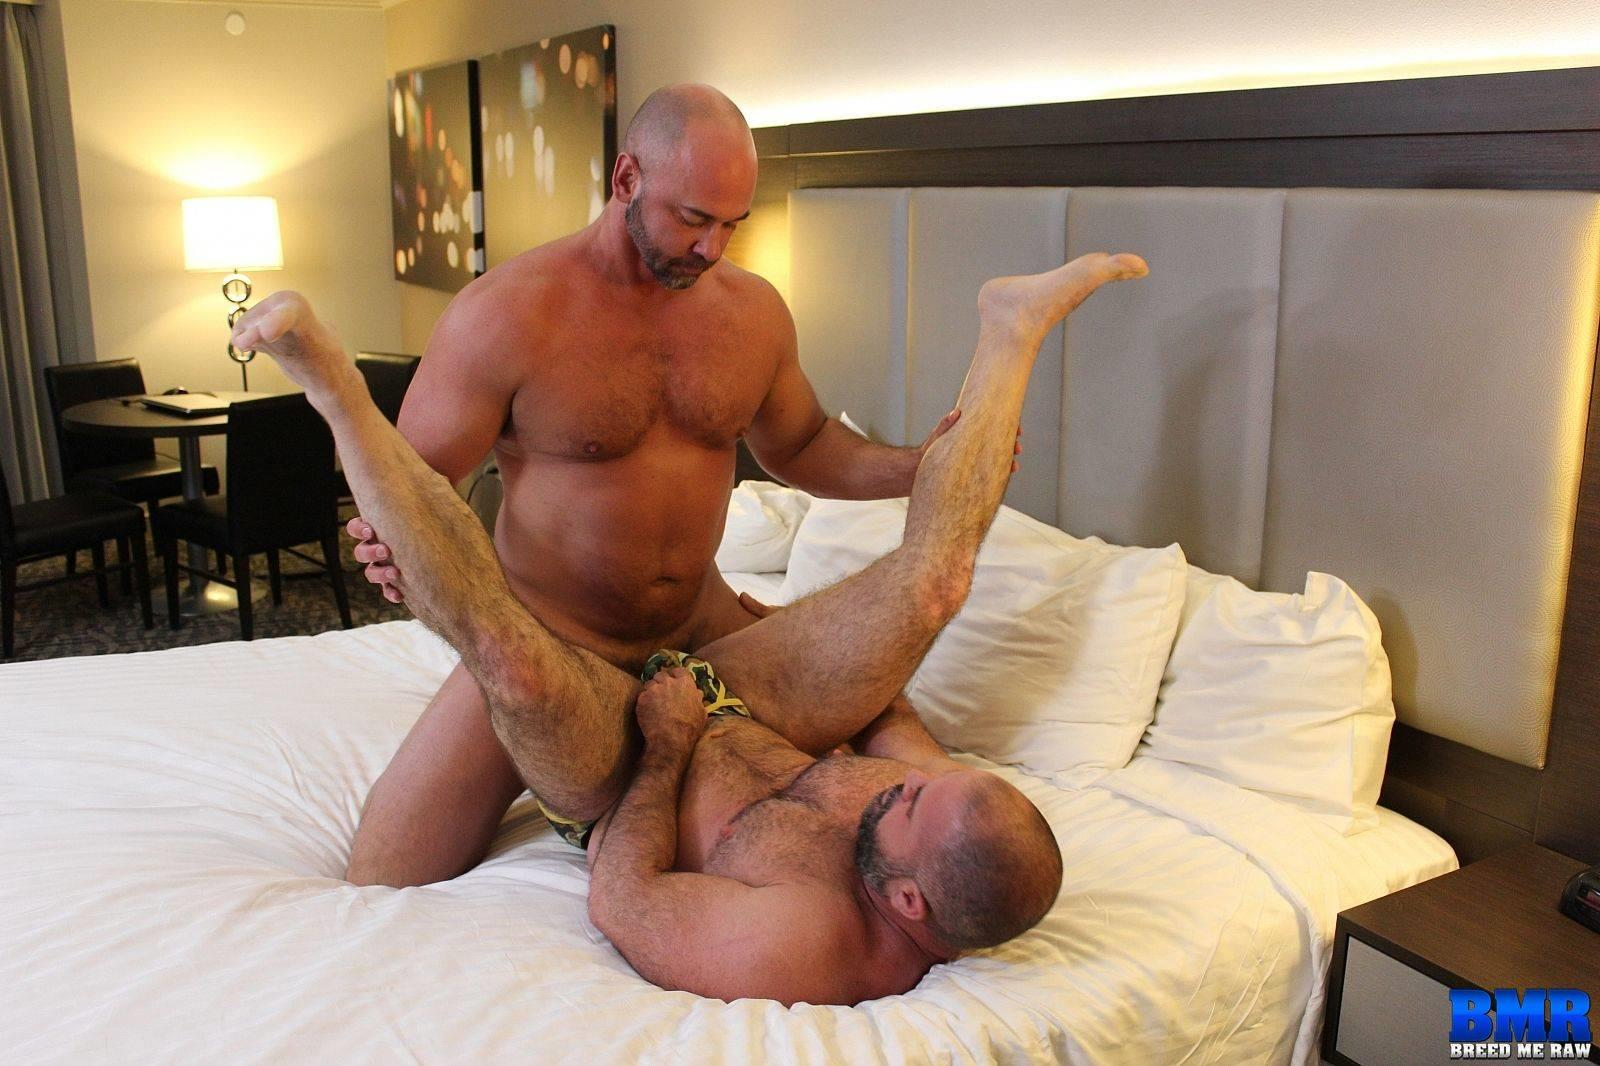 Breed-Me-Raw-Bishop-Angus-and-Tyler-Reed-Hairy-Muscle-Daddies-Breeding-16 Hairy Muscle Daddies Tyler Reed and Bishop Angus Breed